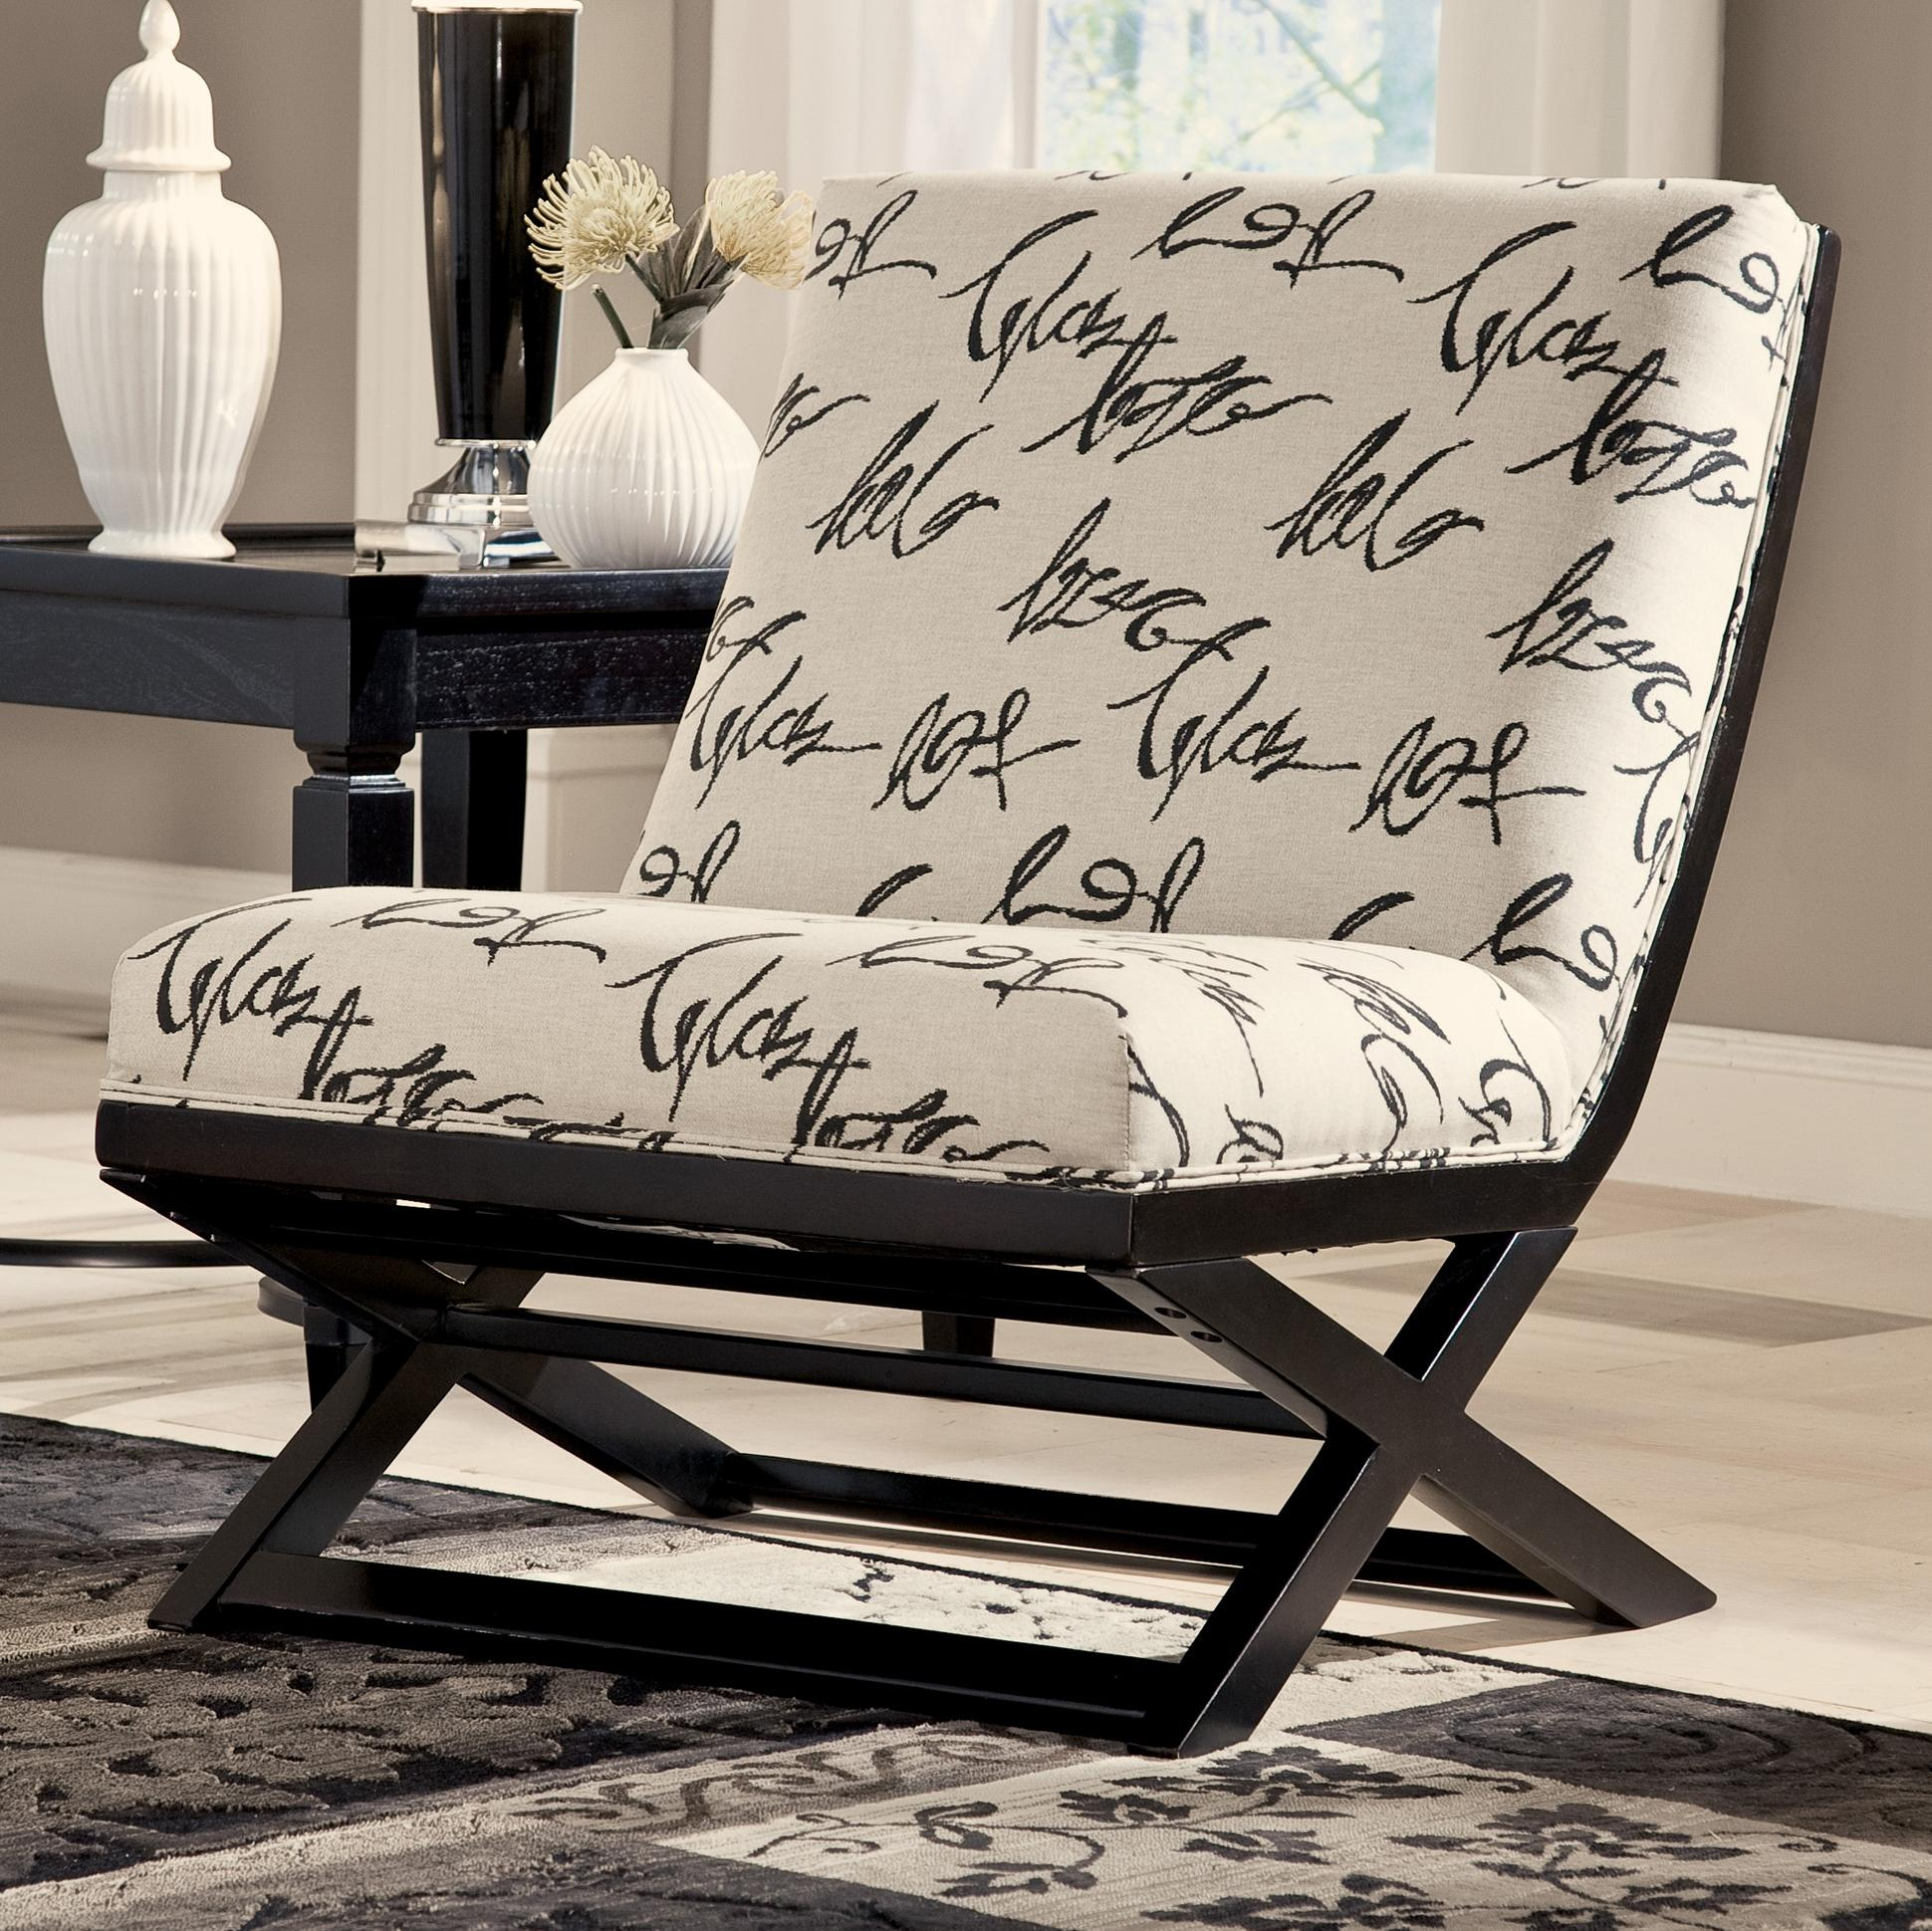 Rocking Accent Chairs Levon Charcoal Armless Showood Accent Chair With Abstract Script Fabric By Signature Design By Ashley At John V Schultz Furniture